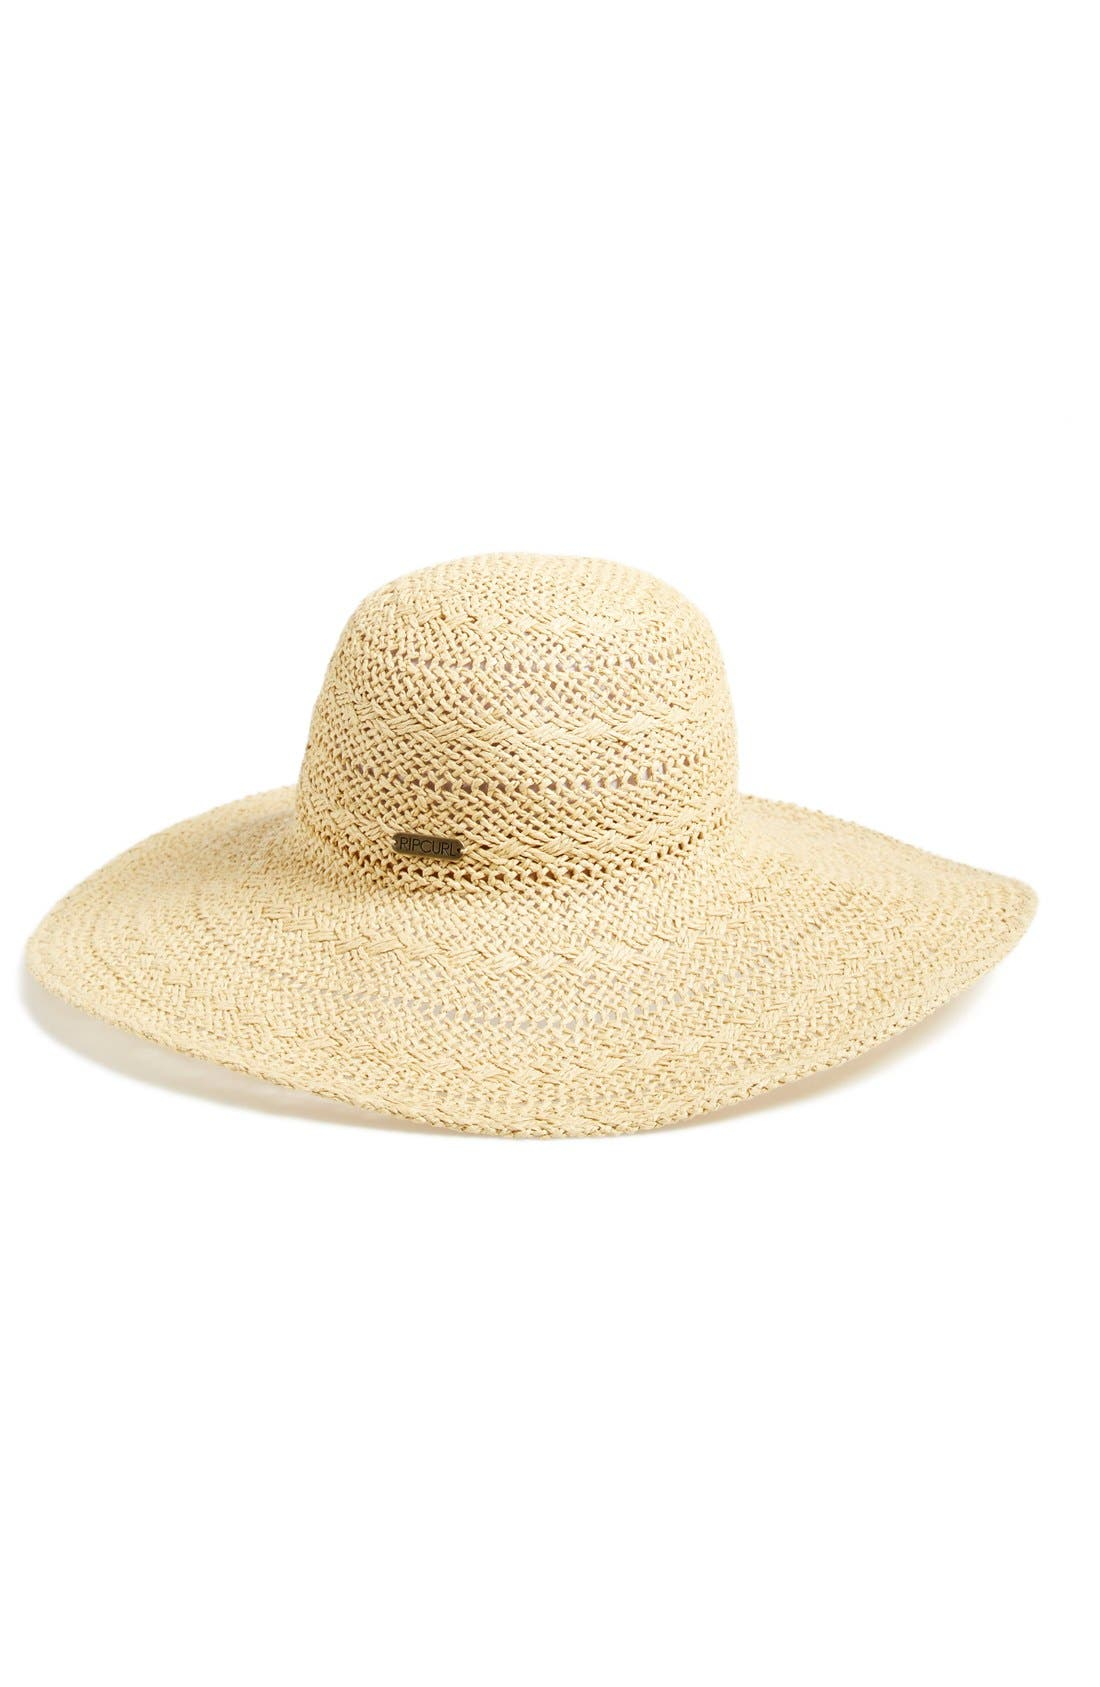 Alternate Image 1 Selected - Rip Curl 'Dusty' Boho Straw Hat